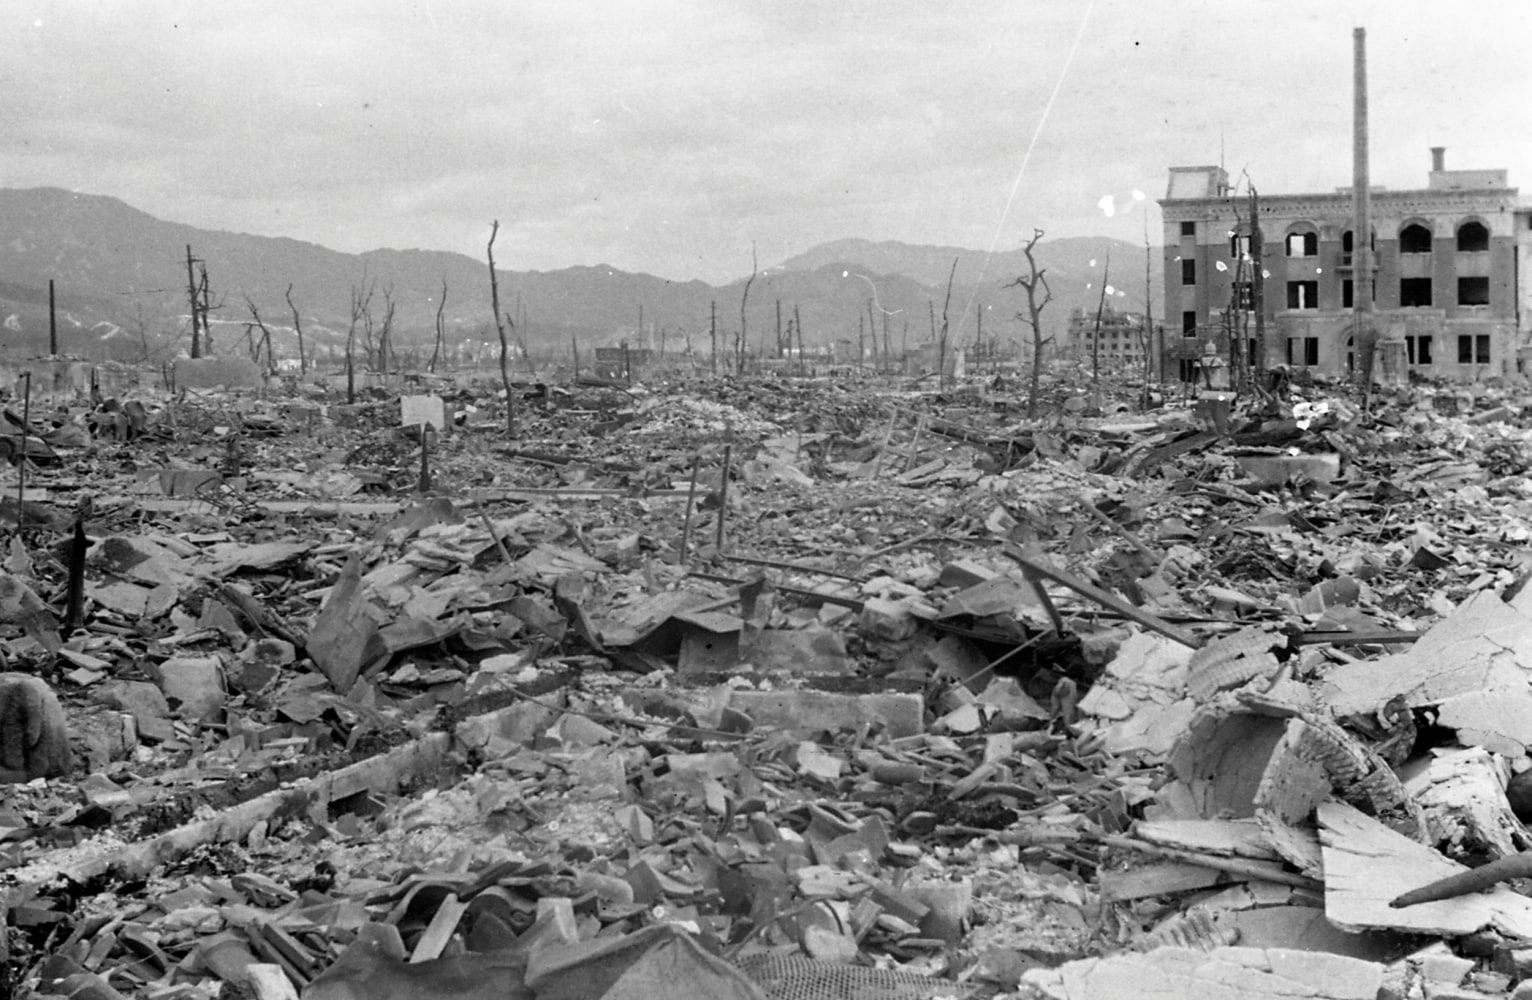 a history of hiroshima and the atomic bombing Hiroshima history including the establishment of hiroshima and history of hiroshima atomic bombing.